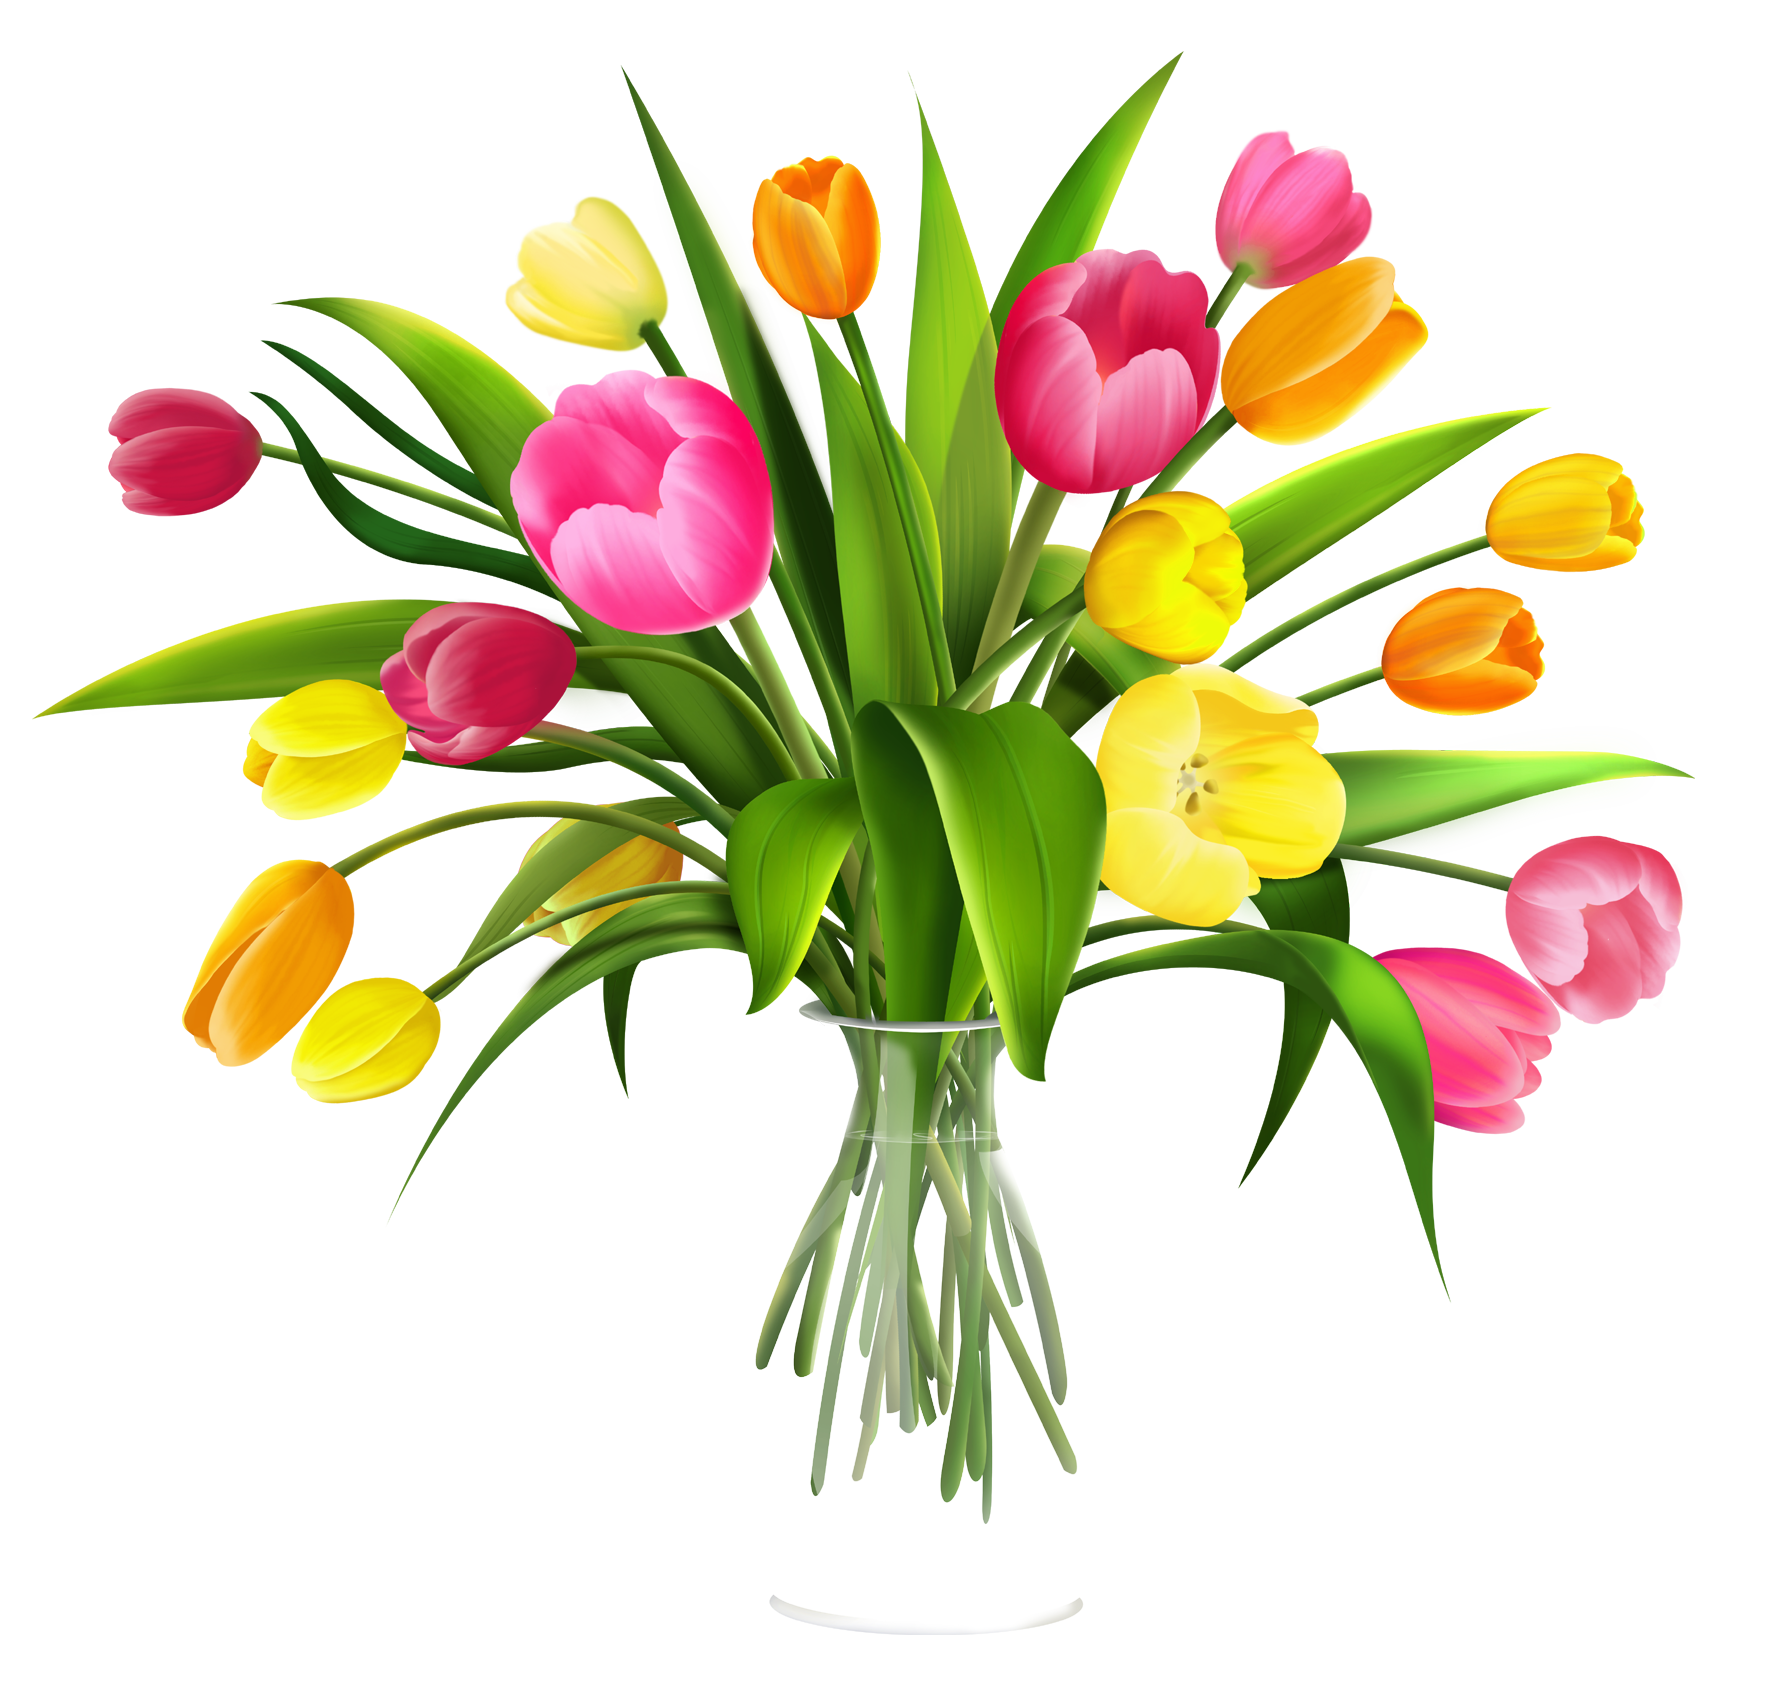 1780x1681 Vase With Tulips Png Clipartu200b Gallery Yopriceville